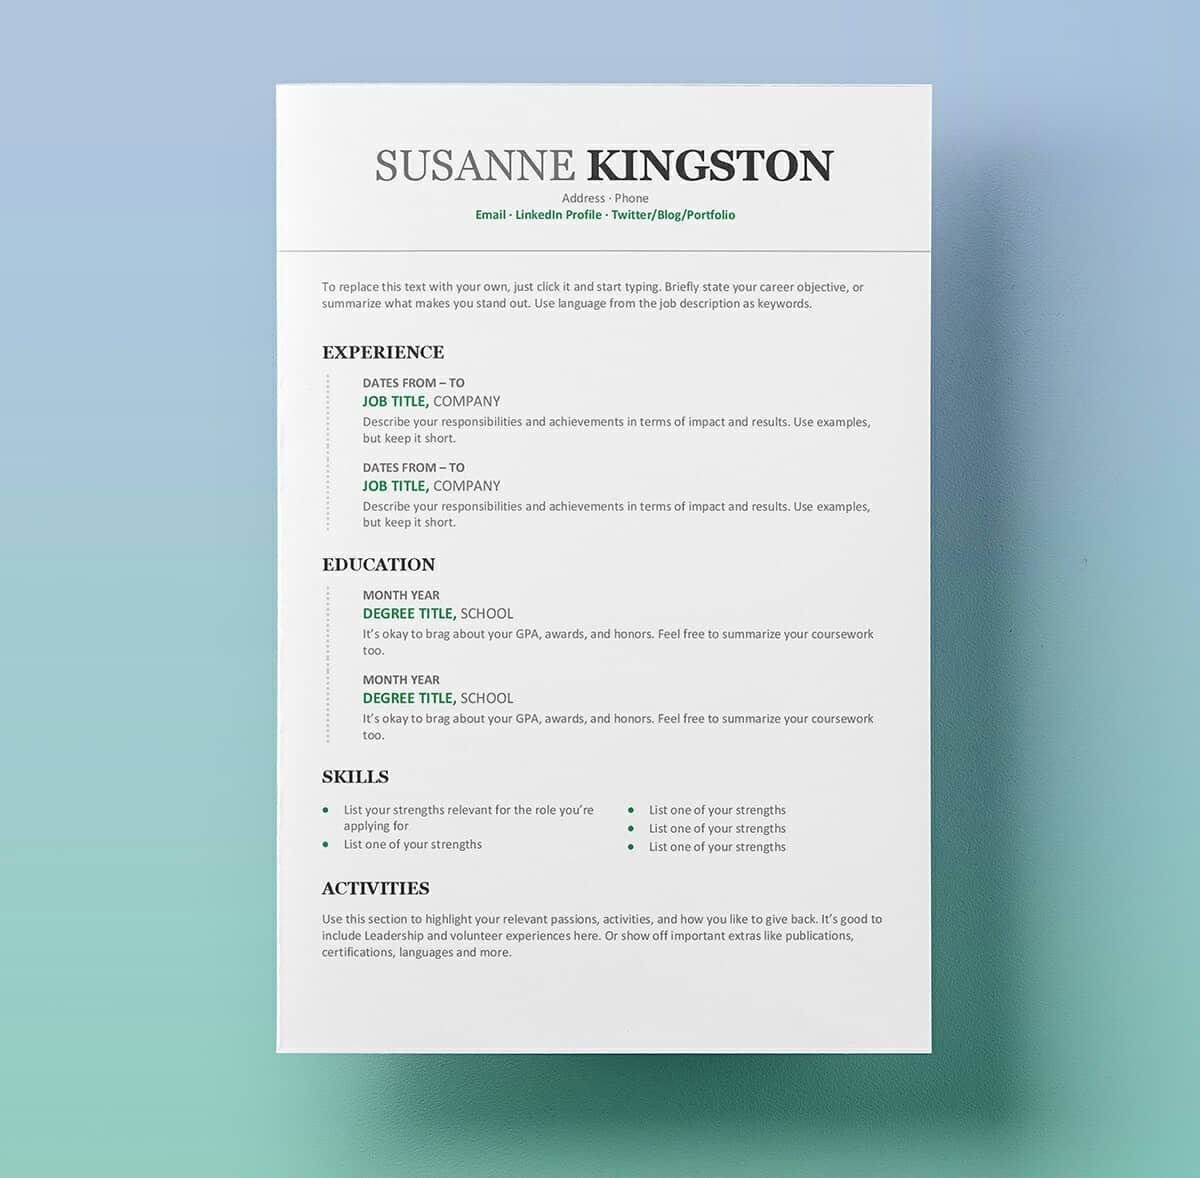 007 Excellent Microsoft Word Free Template Highest Quality  Templates For Report Invoice Uk DownloadFull